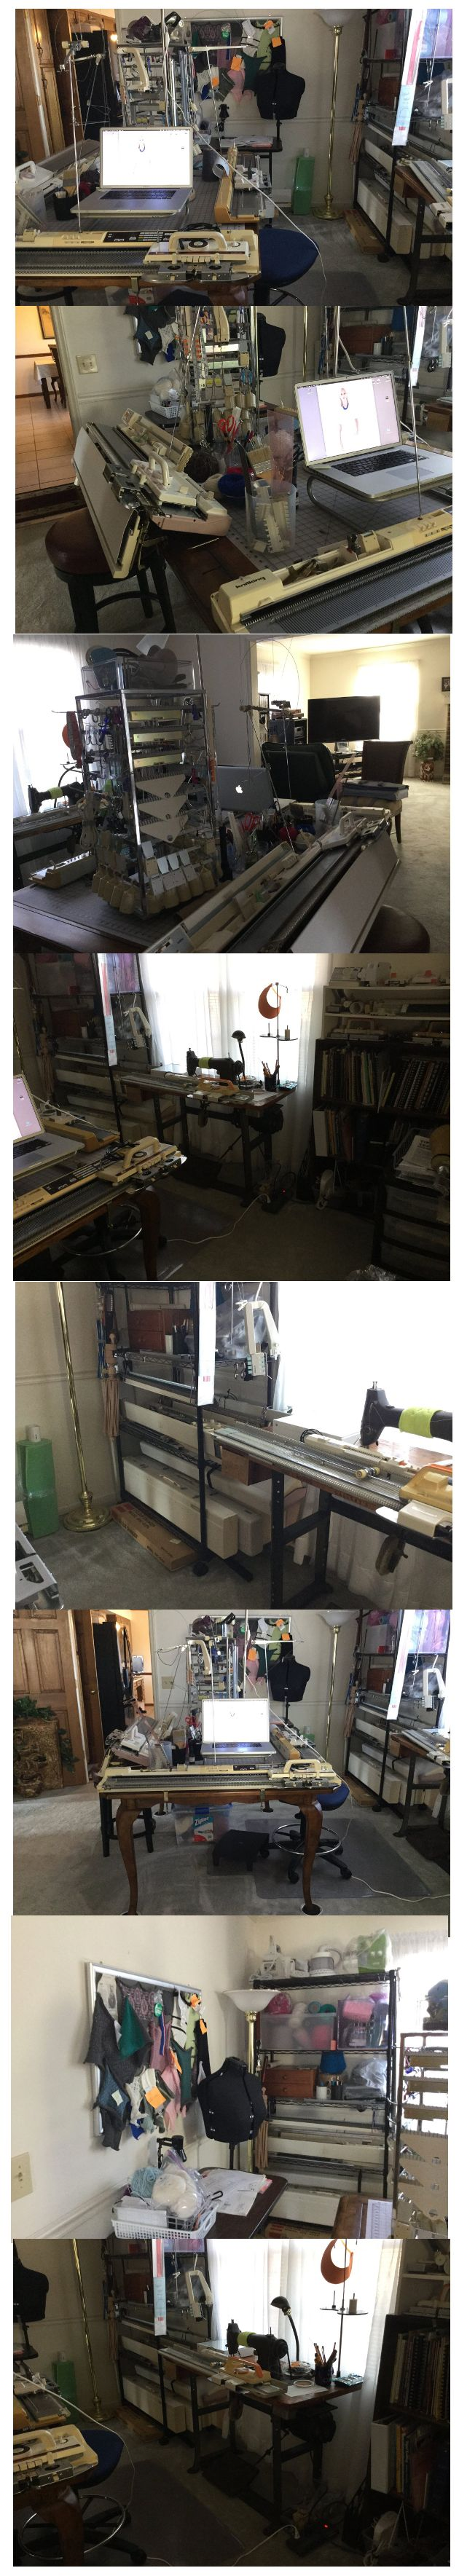 Fantasy Knitting Machine Room!  https://www.facebook.com/groups/13565915487/permalink/10152693085705488/